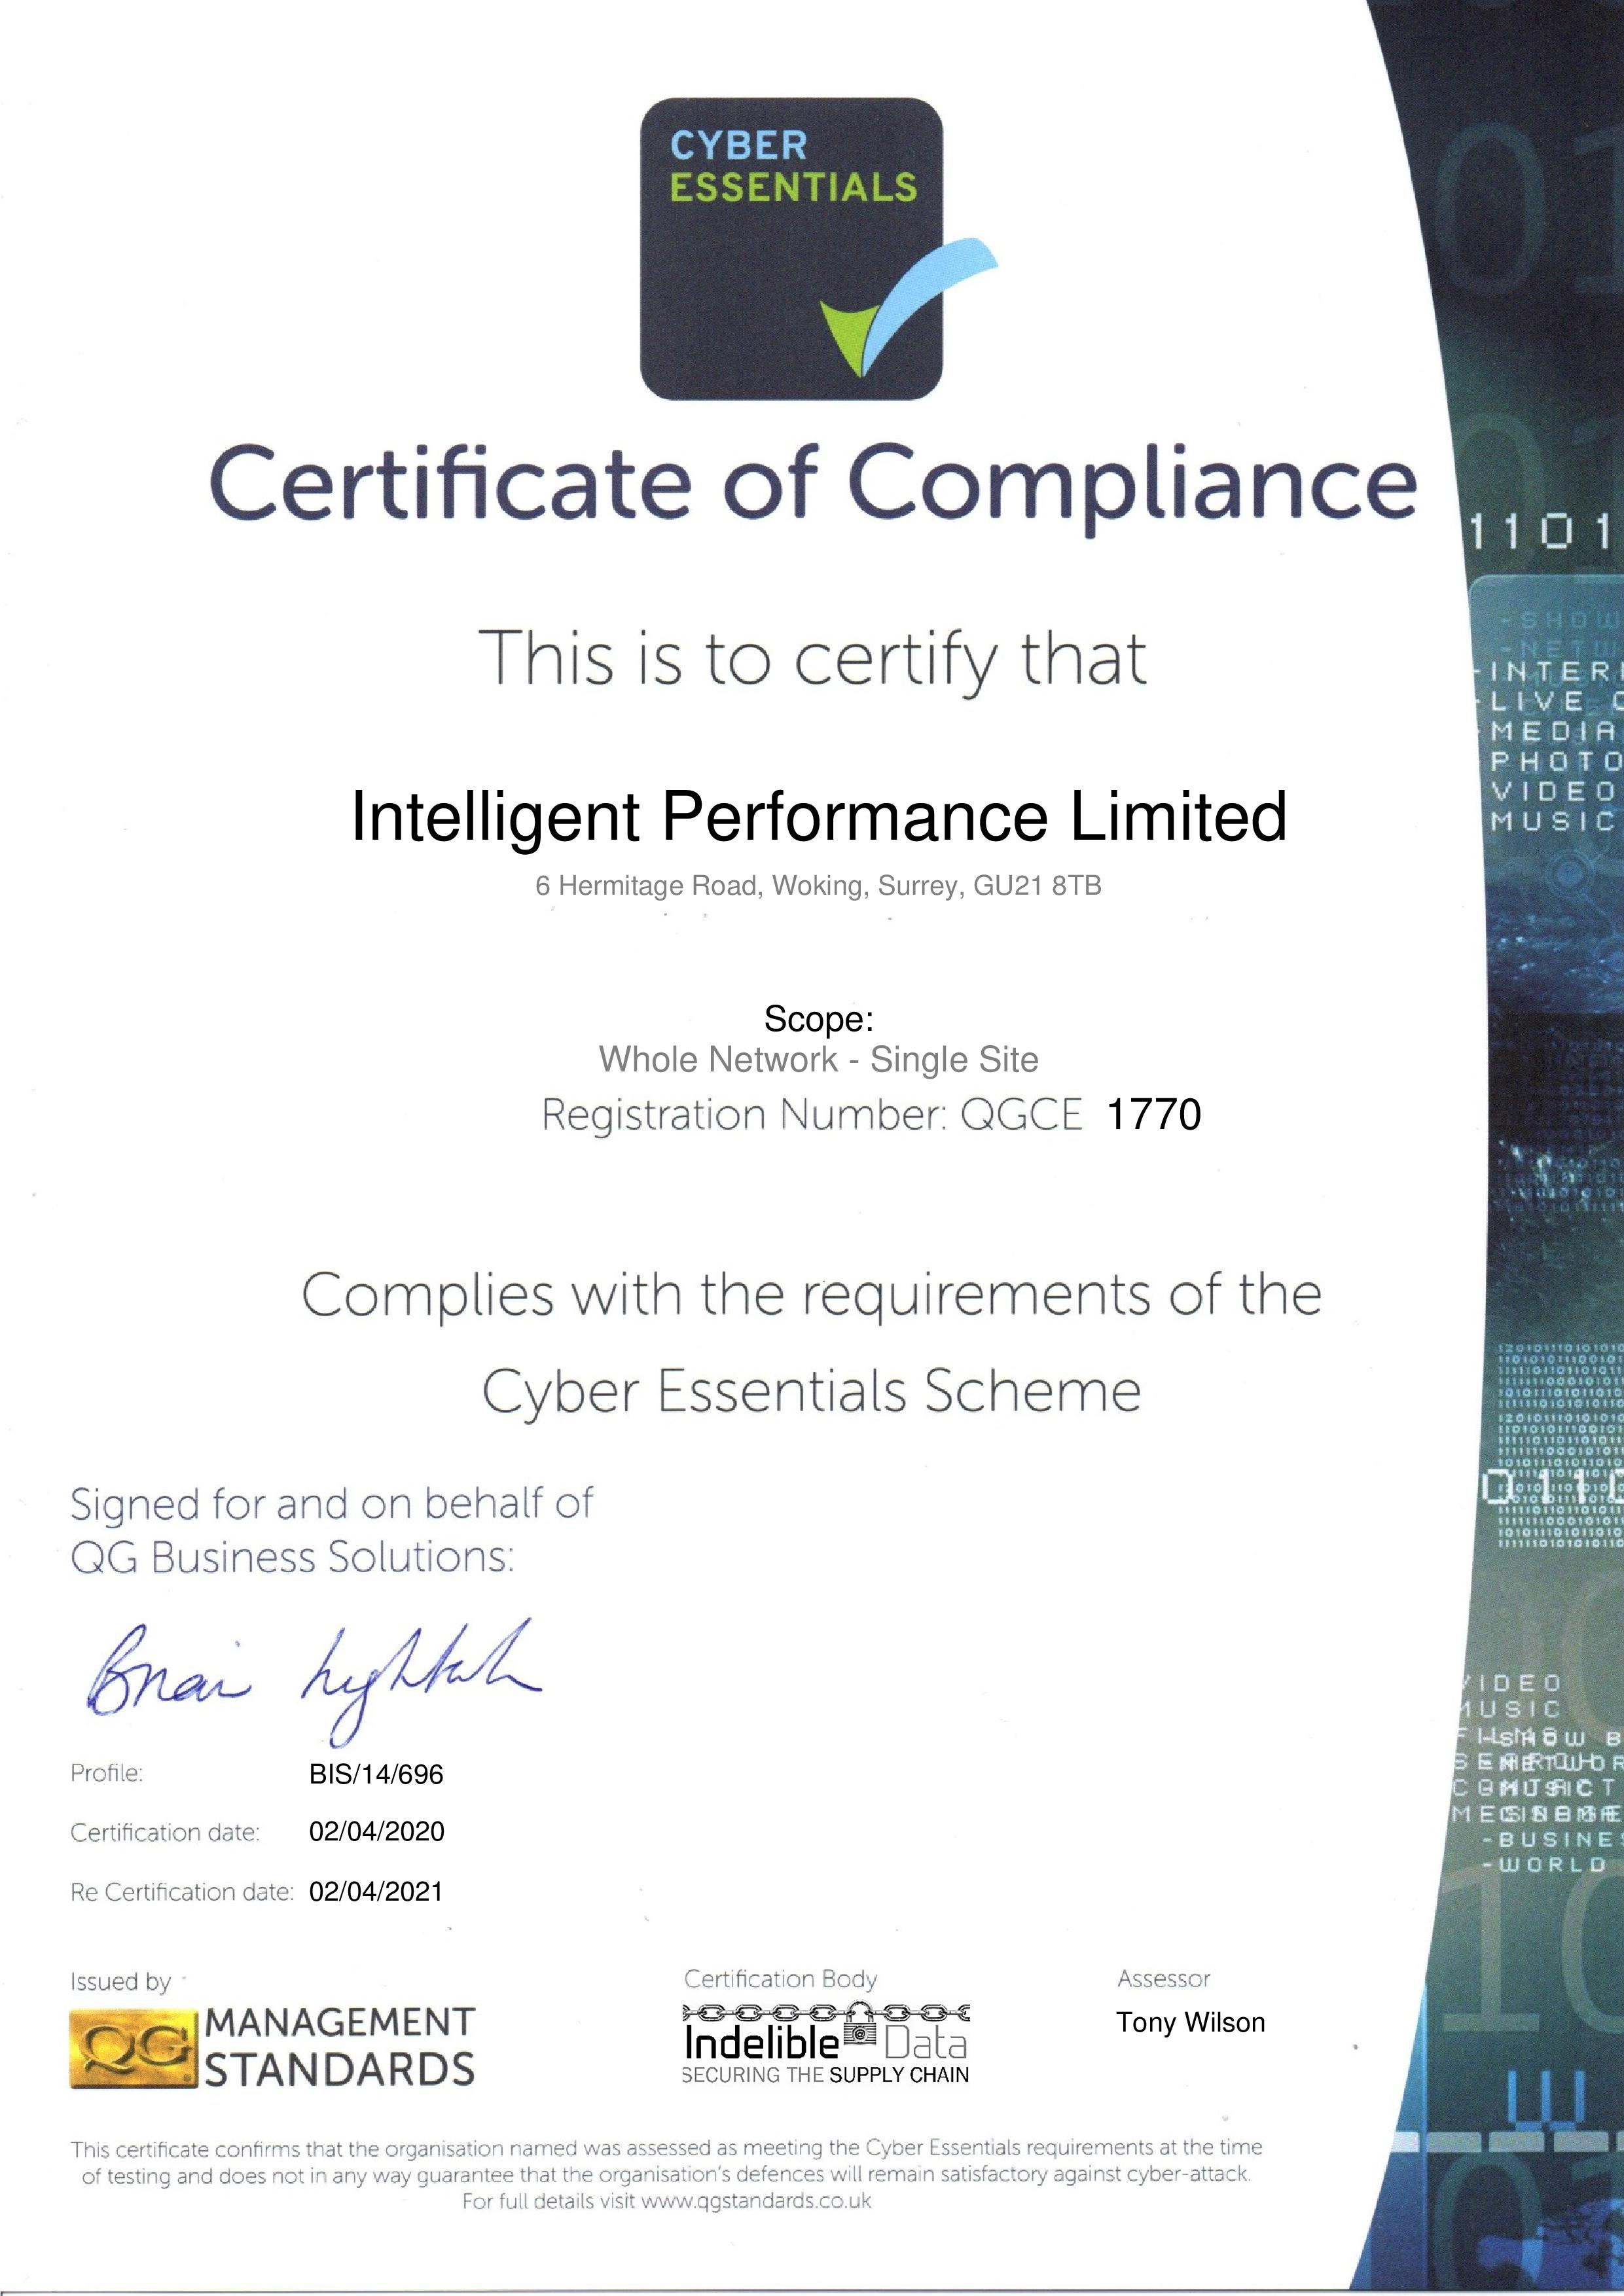 QGCE1770 Intelligent Performance Limited